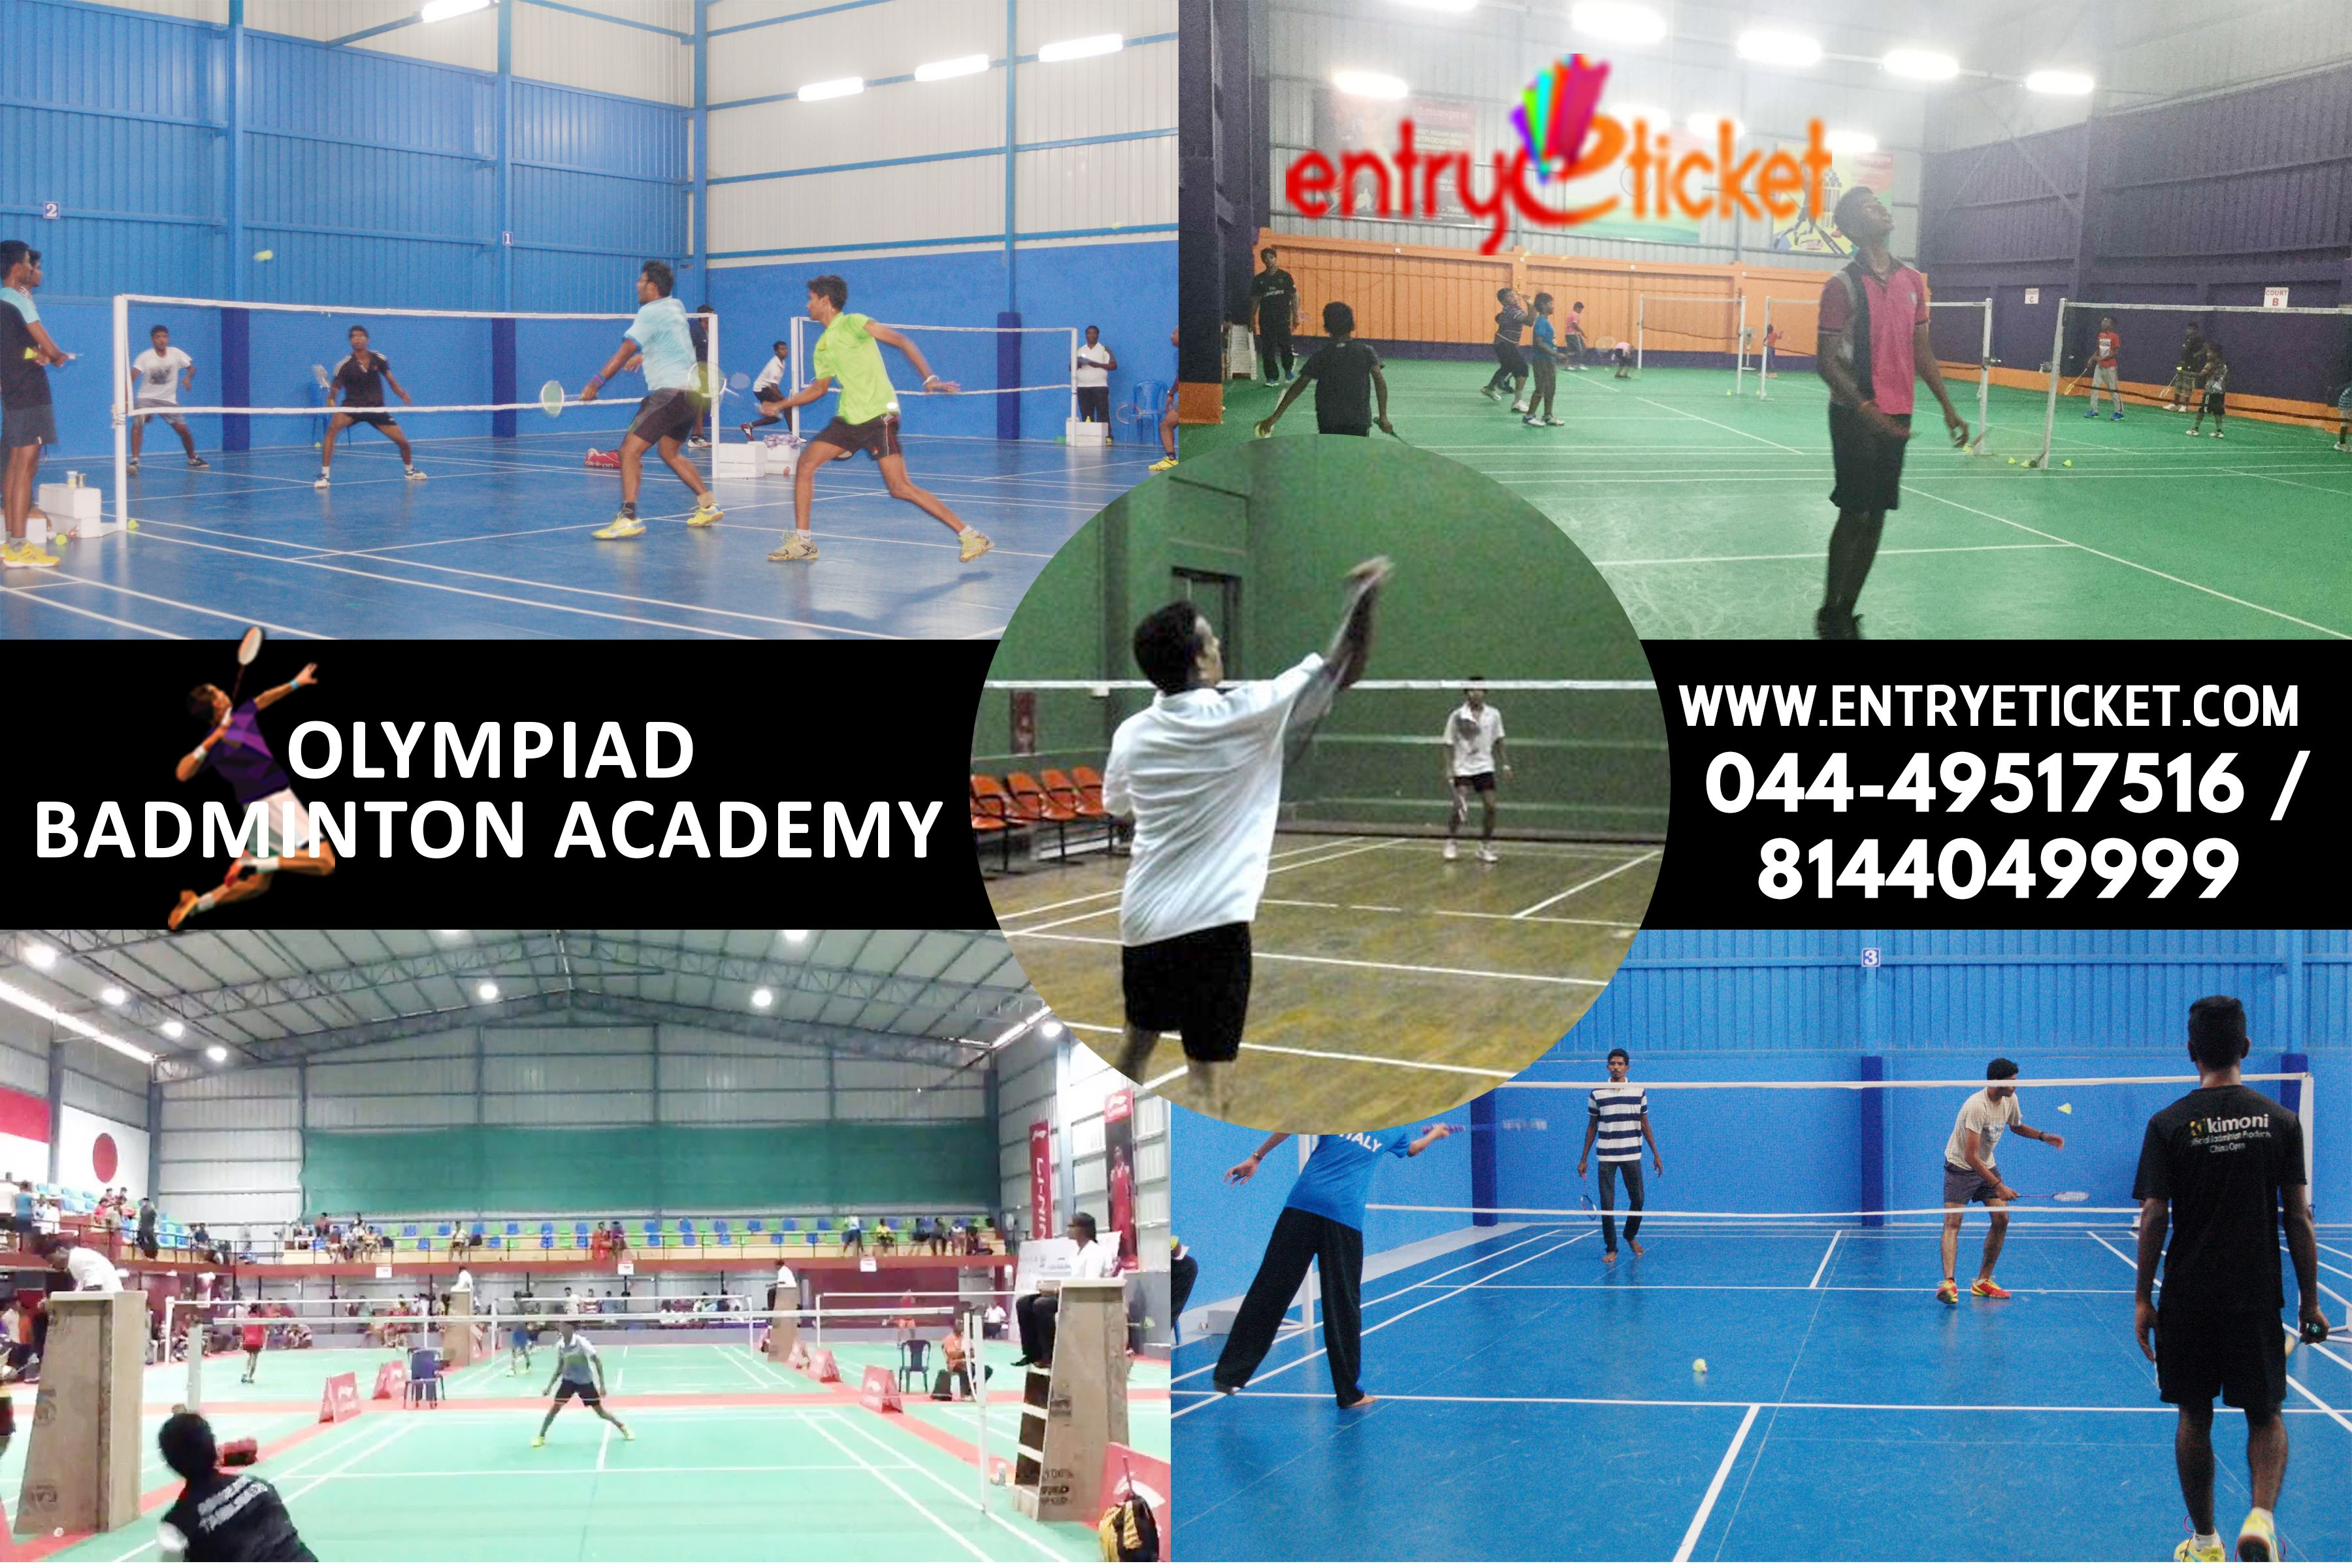 The Best Badmintoncoaching Via Join Now Https Www Entryeticket Com Sports Olympiad Badminton Academy Badminton Badminton Conditioning Training Sports